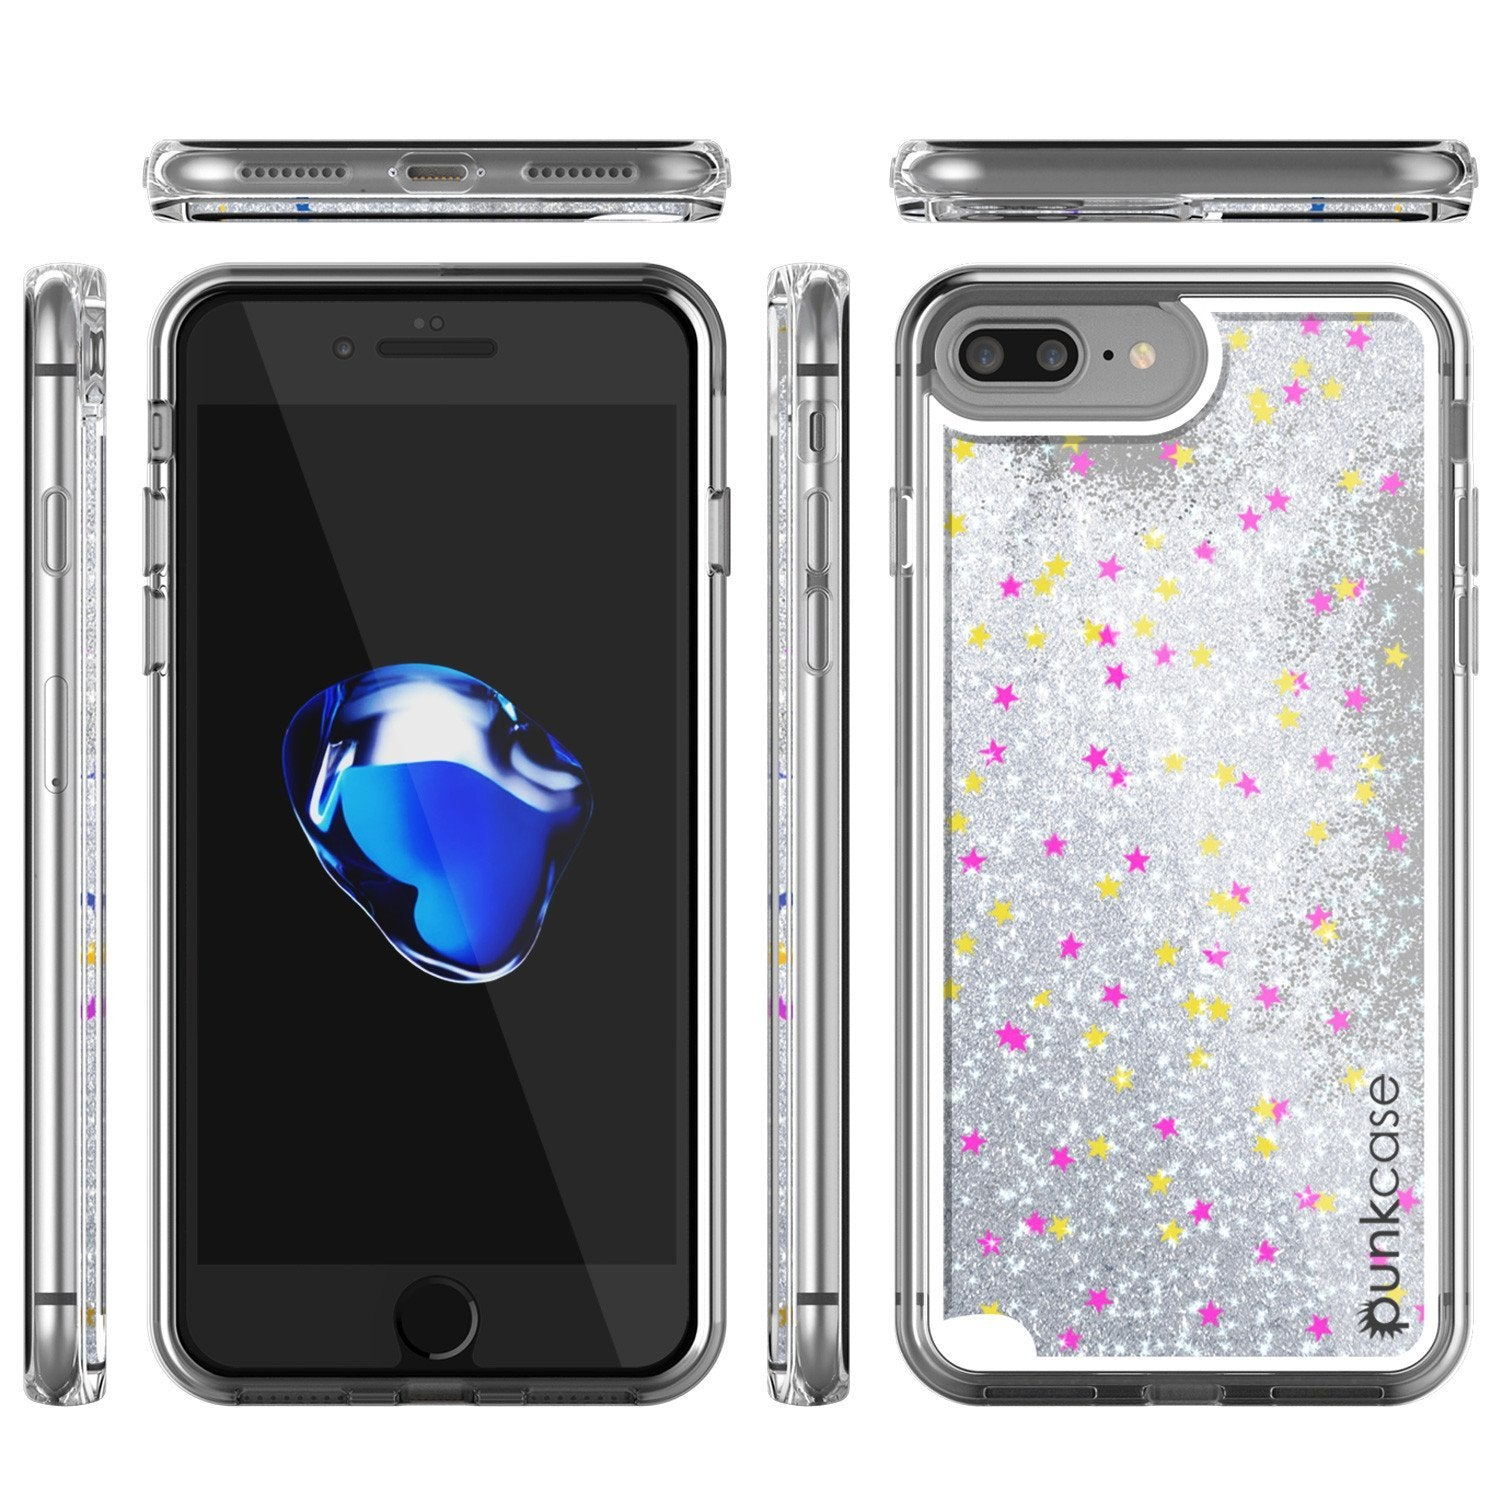 iPhone 8+ Plus Case, PunkCase LIQUID Silver Series, Protective Dual Layer Floating Glitter Cover - PunkCase NZ